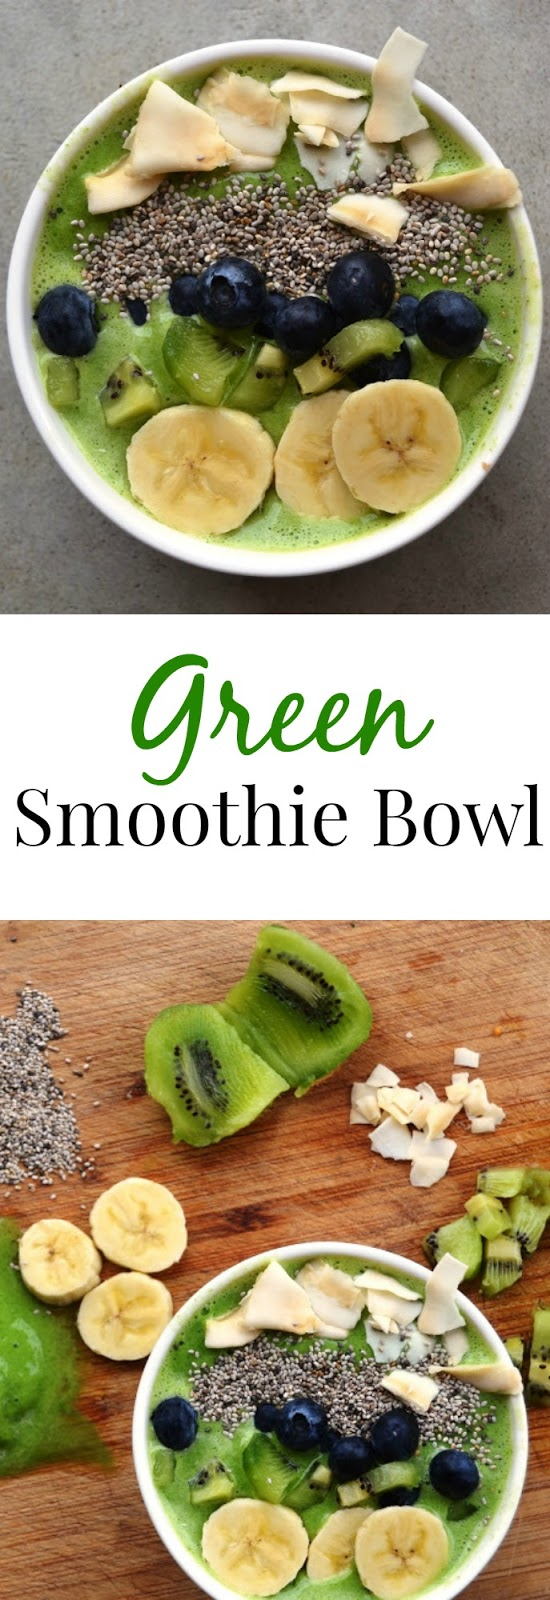 This Green Smoothie Bowl takes 5 minutes or less to make and is customizable based on what you have on hand. Makes the perfect breakfast or snack! www.nutritionistreviews.com